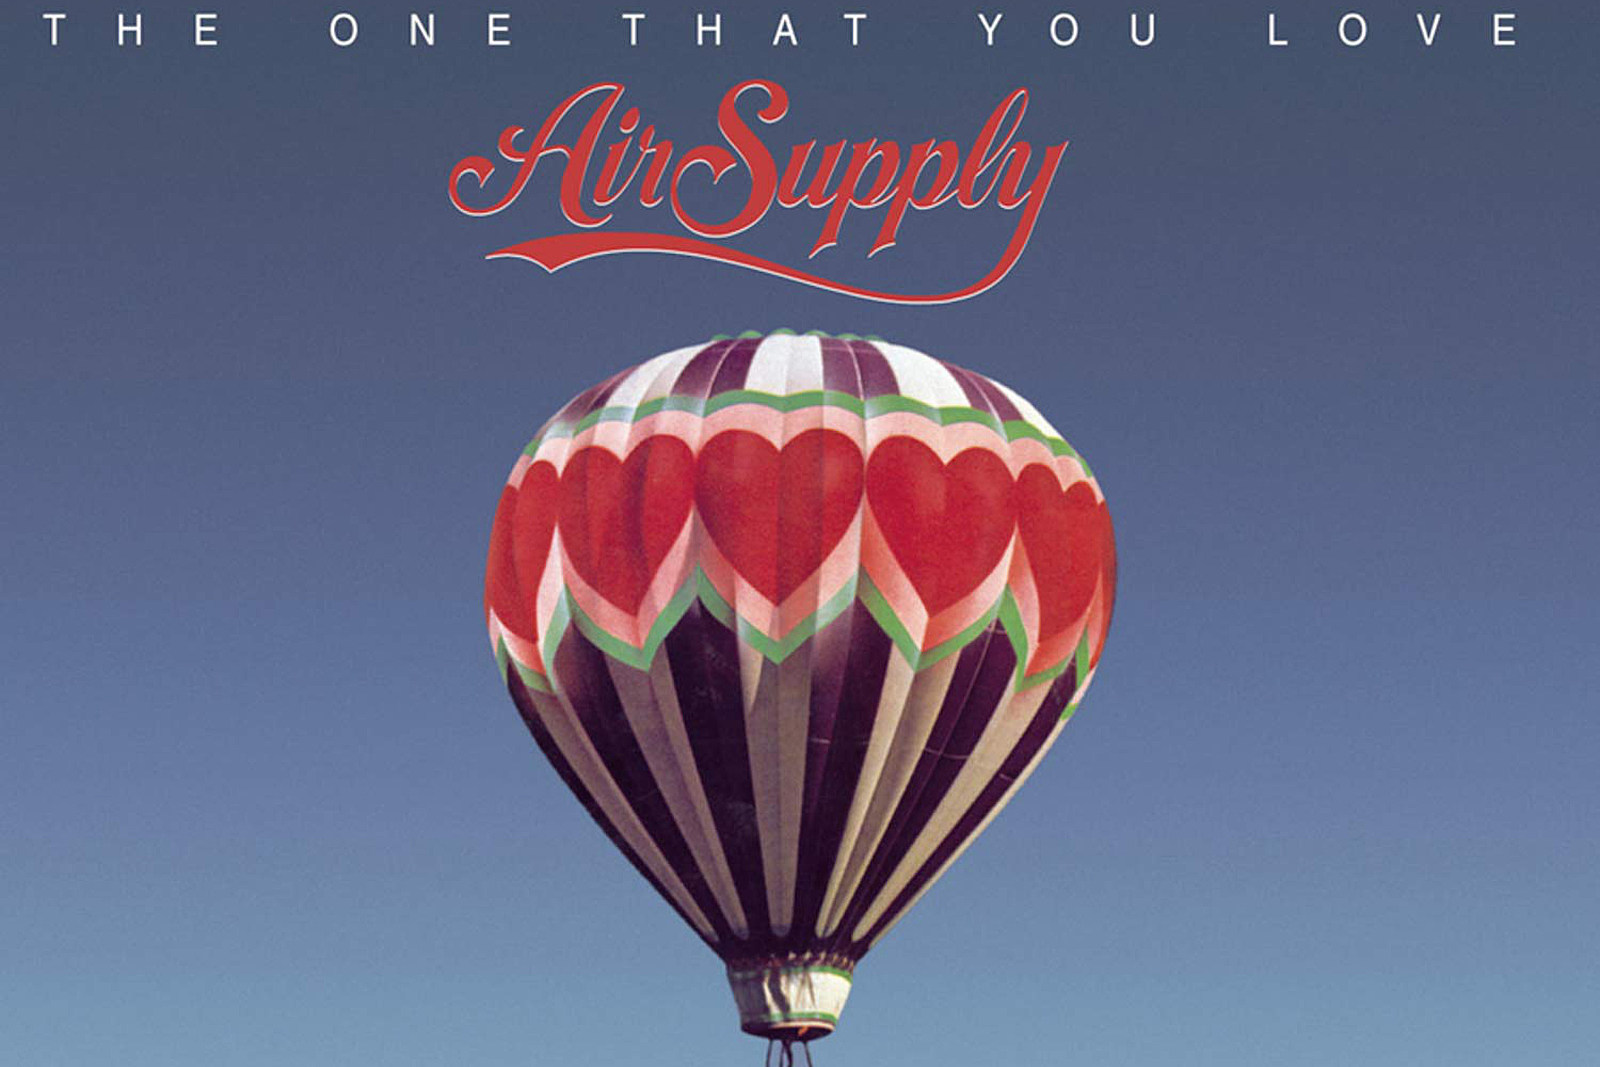 40 Years Ago: Air Supply Hit the Top w/ 'The One That You Love'